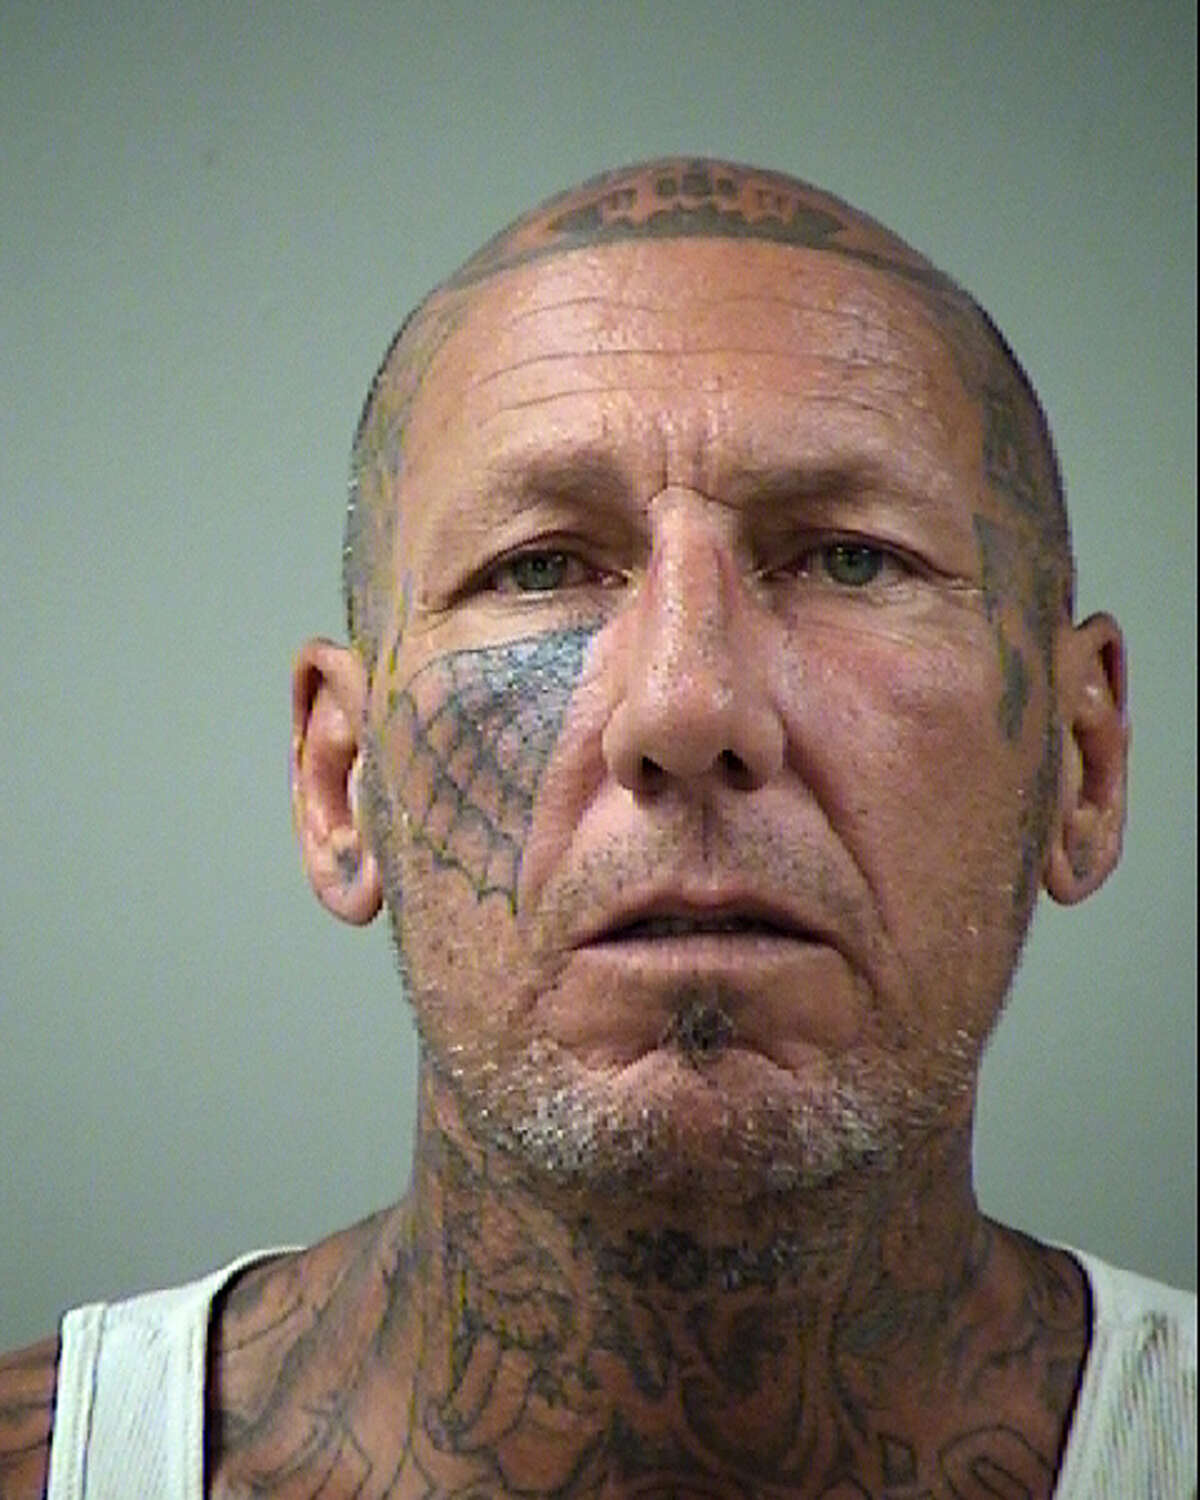 Jeffrey Farris, 52, was sentenced to 12 years in prison following a sixth DWI arrest in San Antonio 2015. According to the San Antonio Express-News, Farris was leaving a store in August 2015 when he struck multiple vehicles and people in the parking lot.